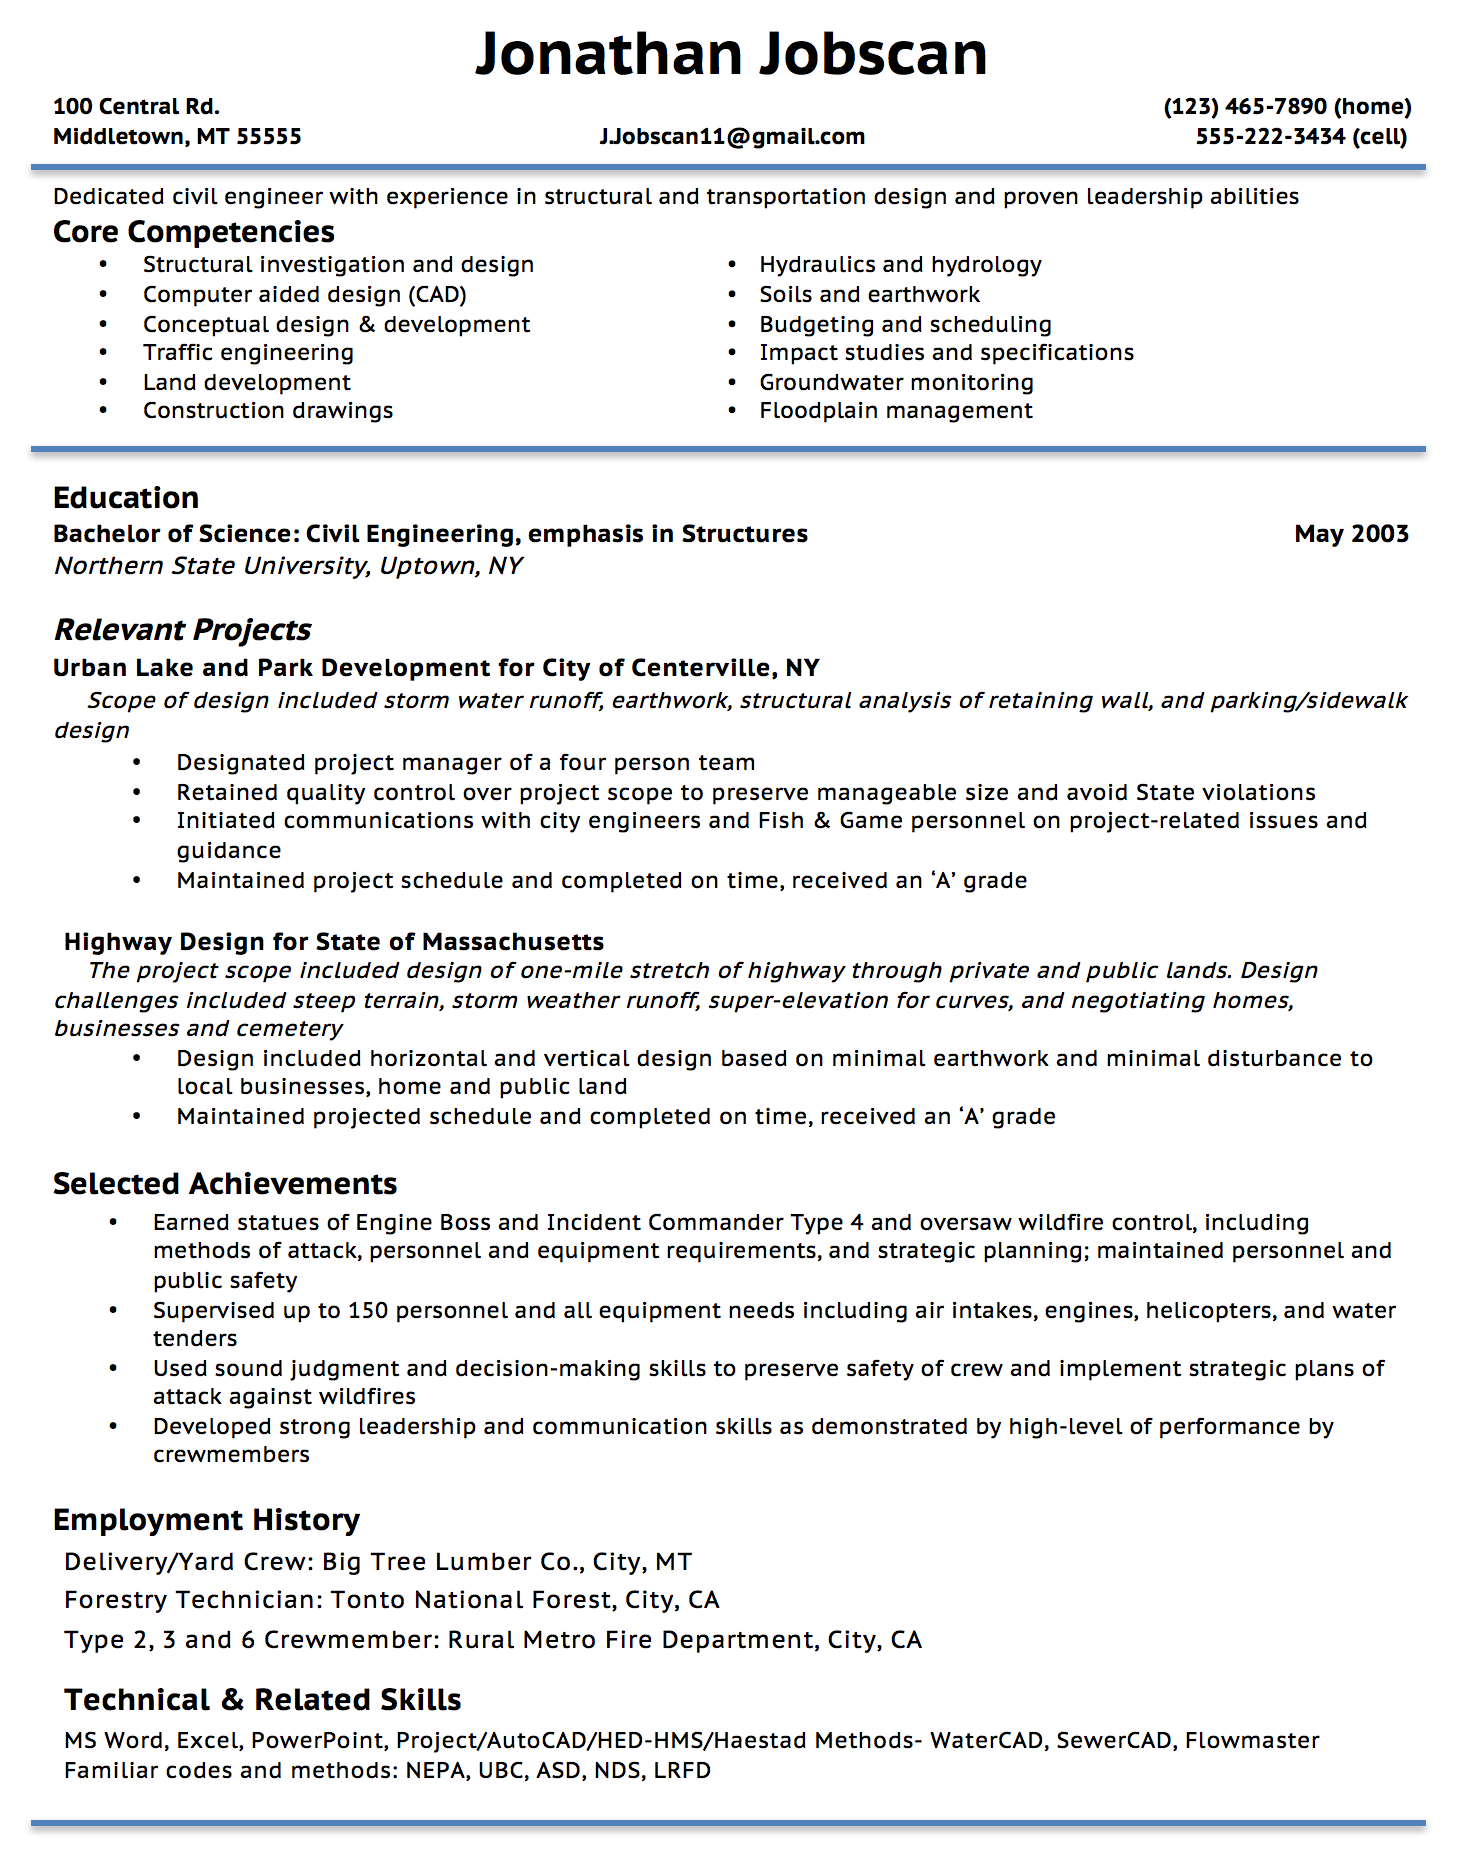 Resume Custom Resume Writing Guide Jobscan